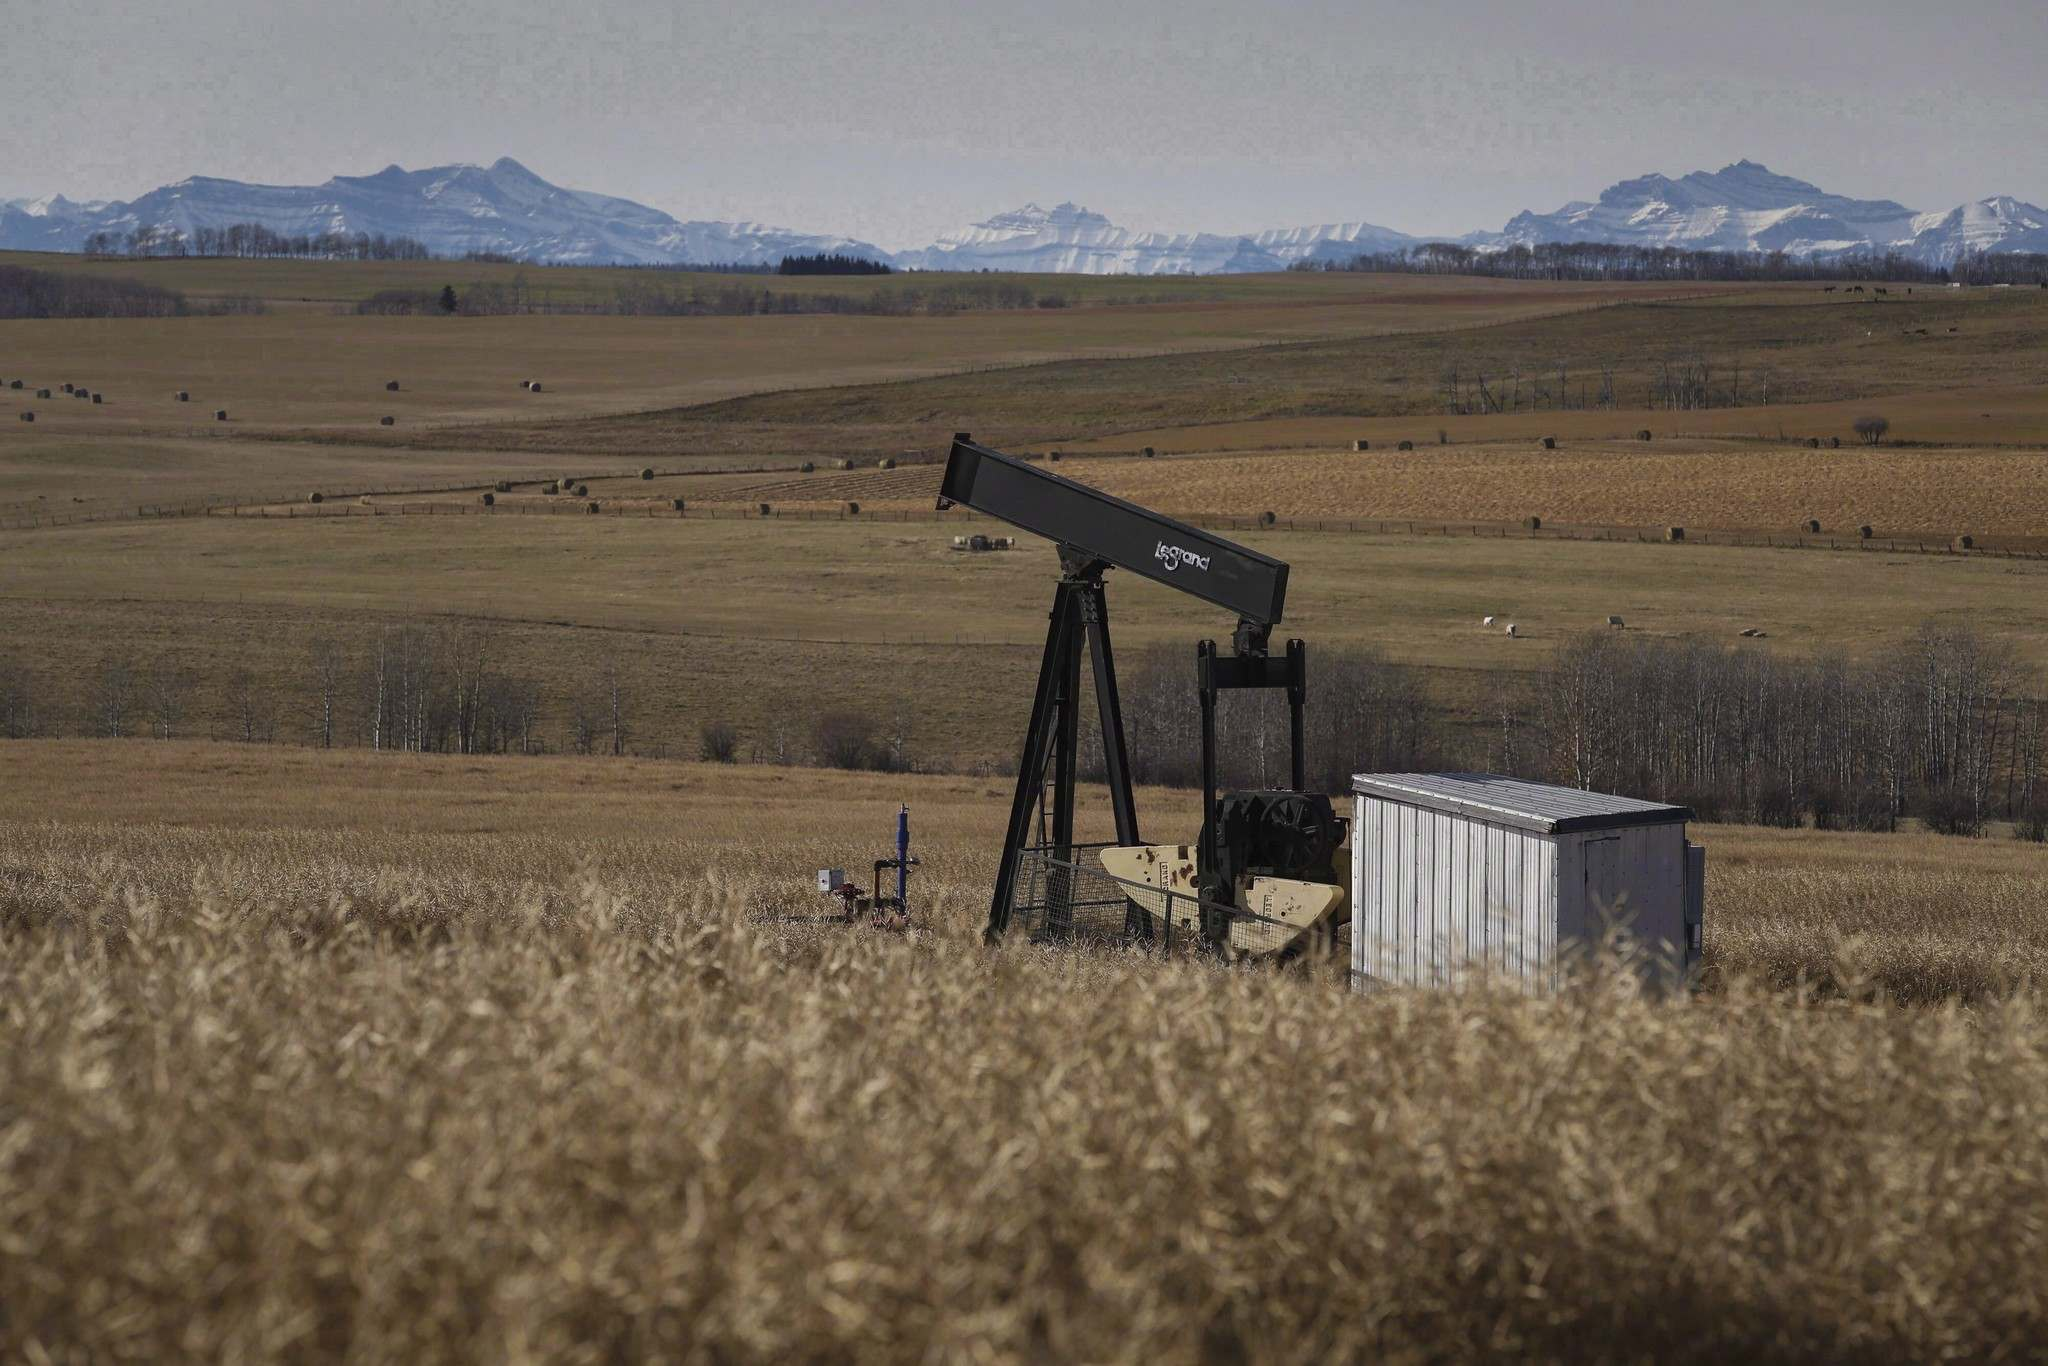 The Liberals carved out a program to pay people to remediate abandoned oil wells.